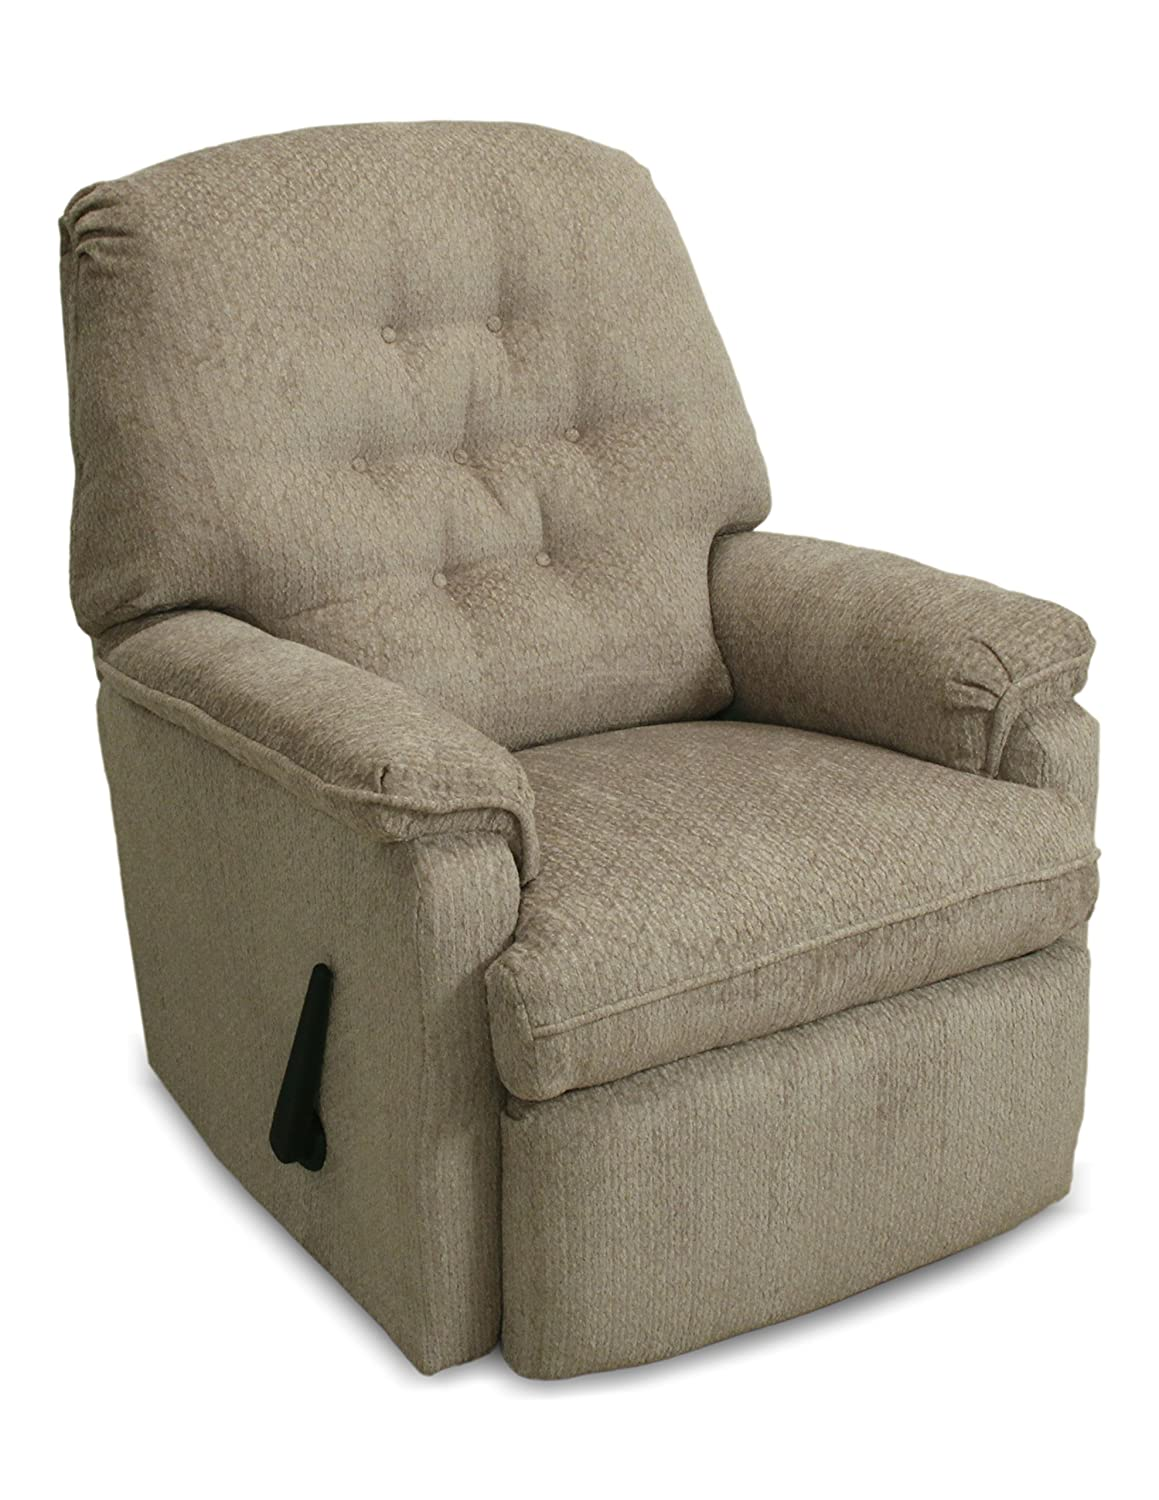 recliner reclining z reclina la chair boy rockerar town lane for querocomprar me recliners rvs harbor small rocker